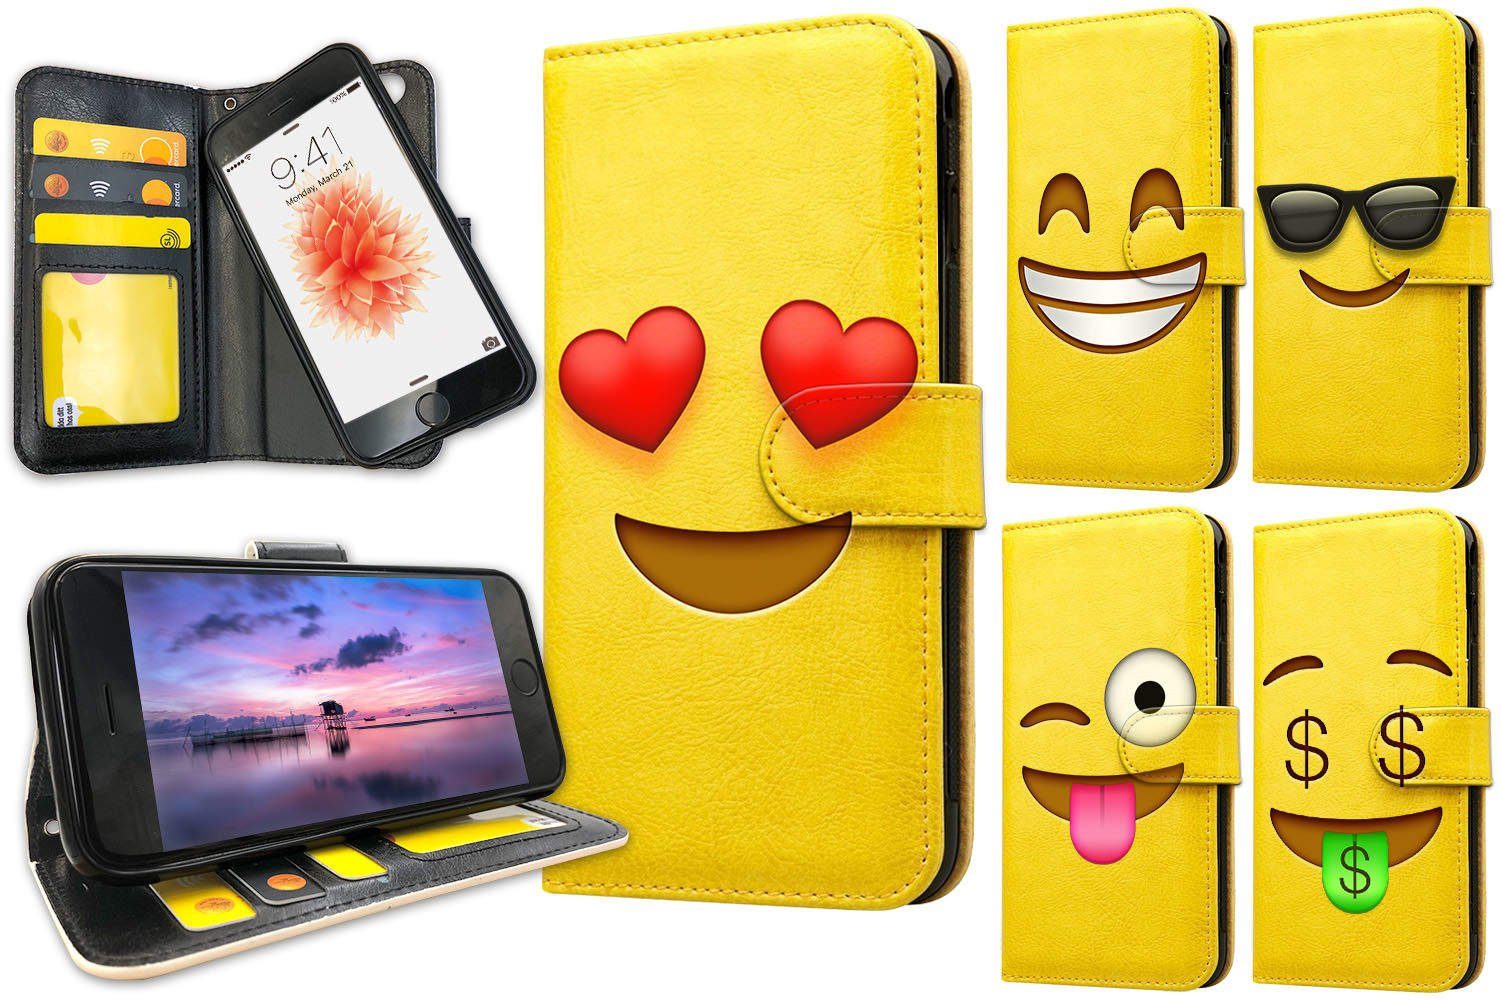 iPhone 6/6s Plus - Mobilfodral Emoji / Smiley - 15 Motiv